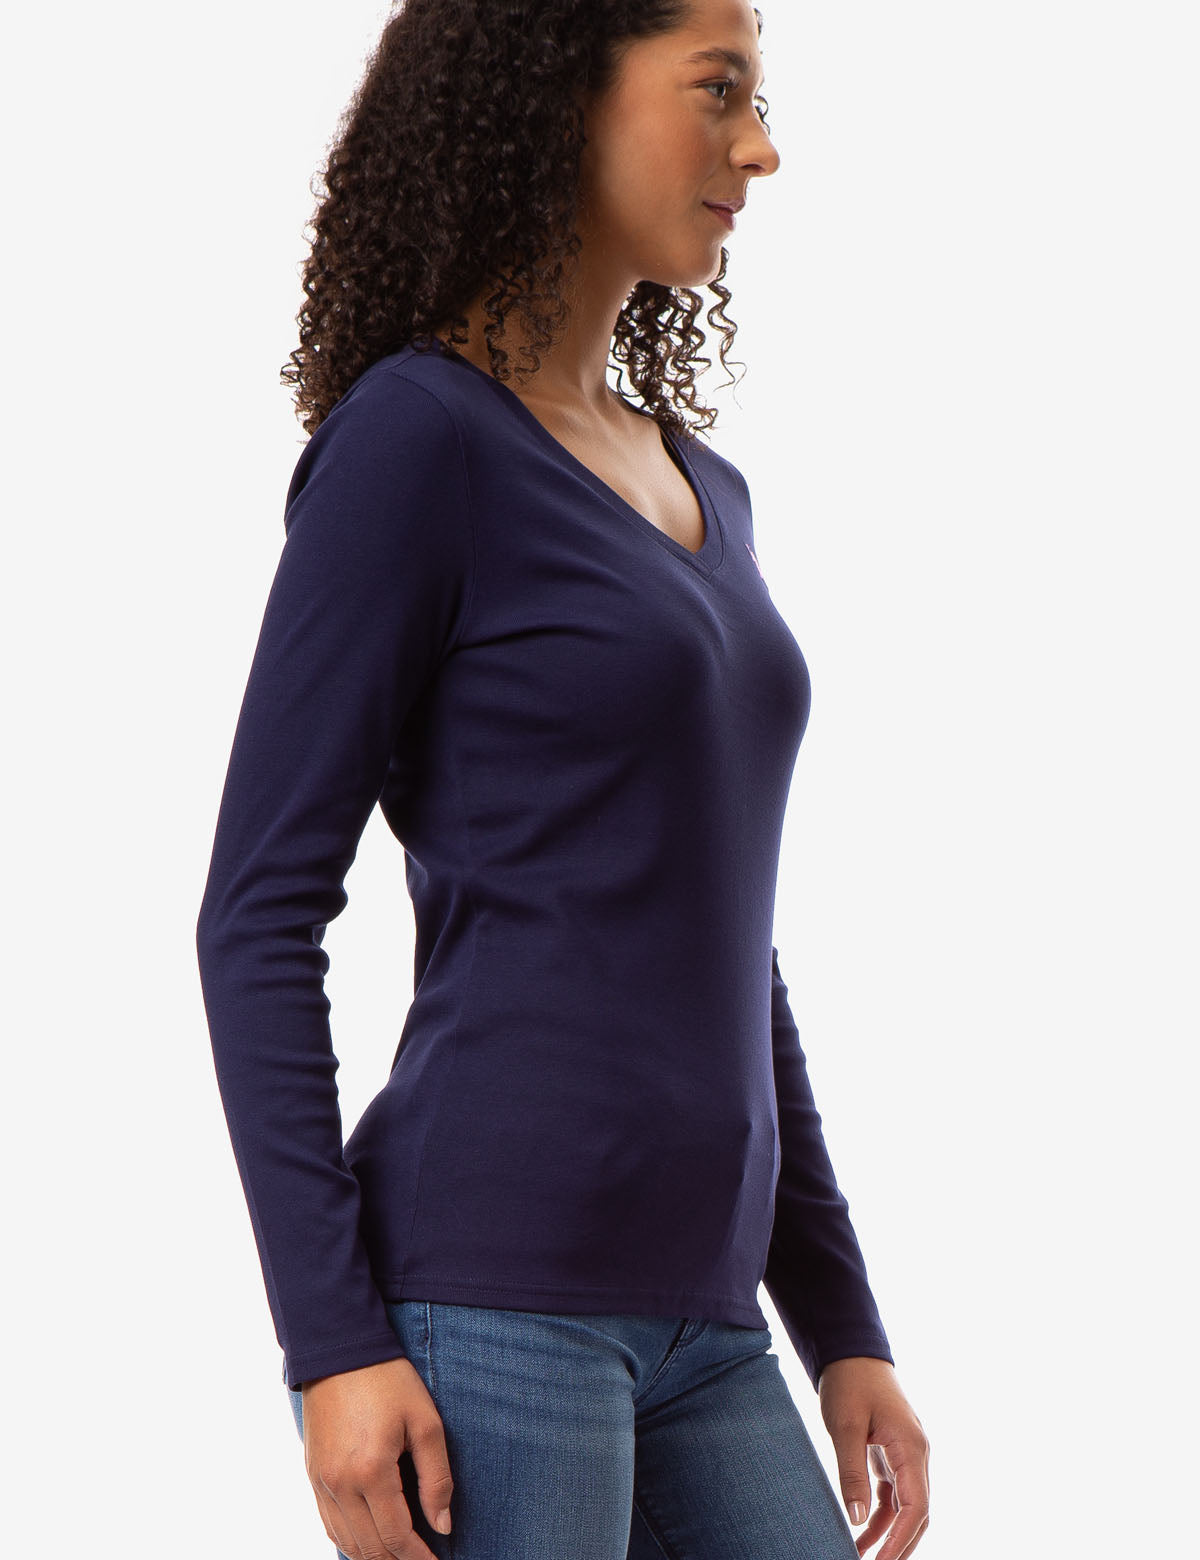 LONG SLEEVE V-NECK T-SHIRT - U.S. Polo Assn.